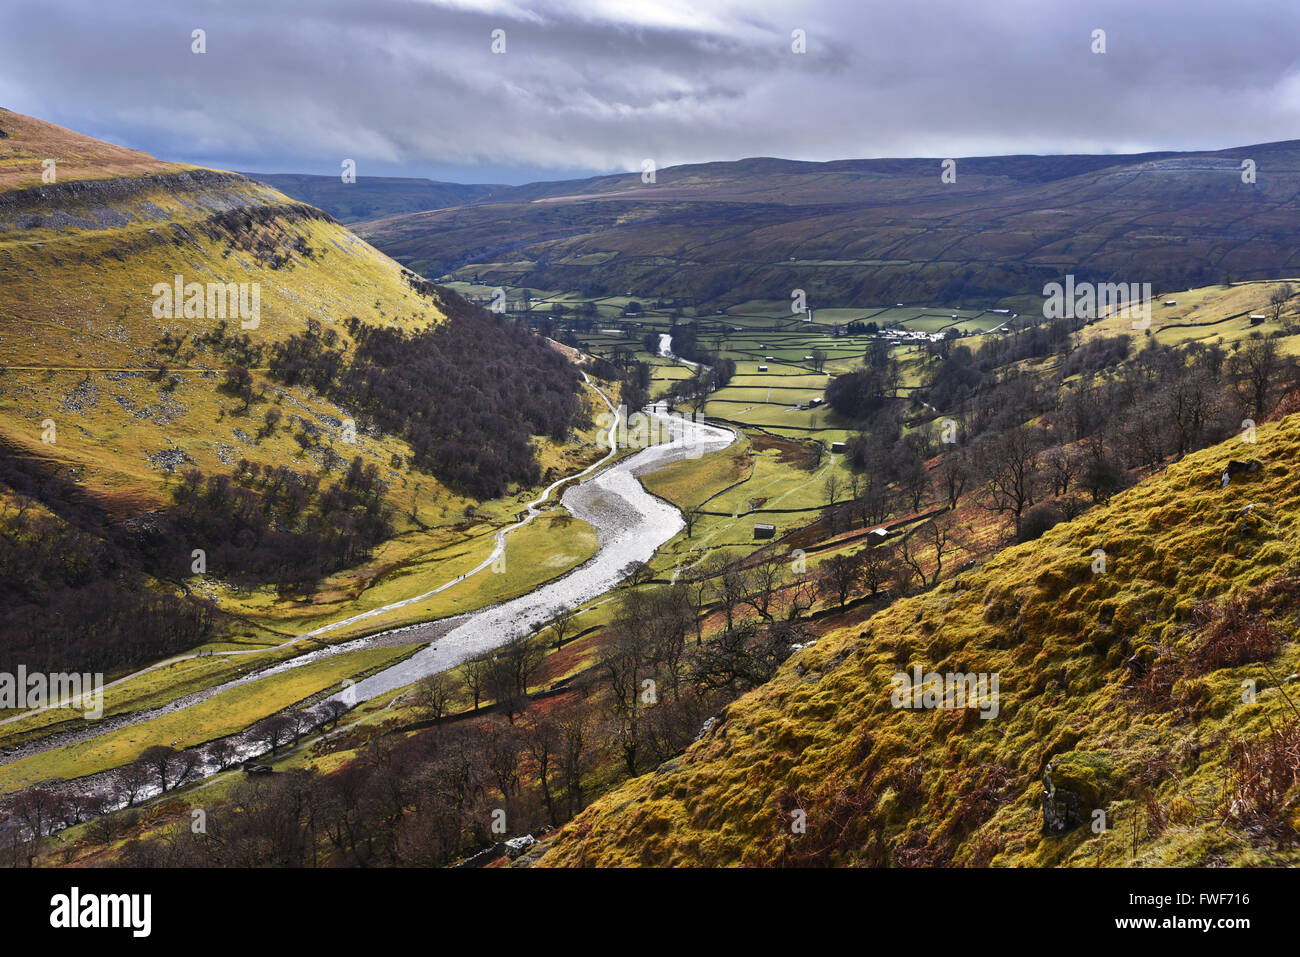 The River Swale and the village of Muker, Swaledale, North Yorkshire, Uk - Stock Image